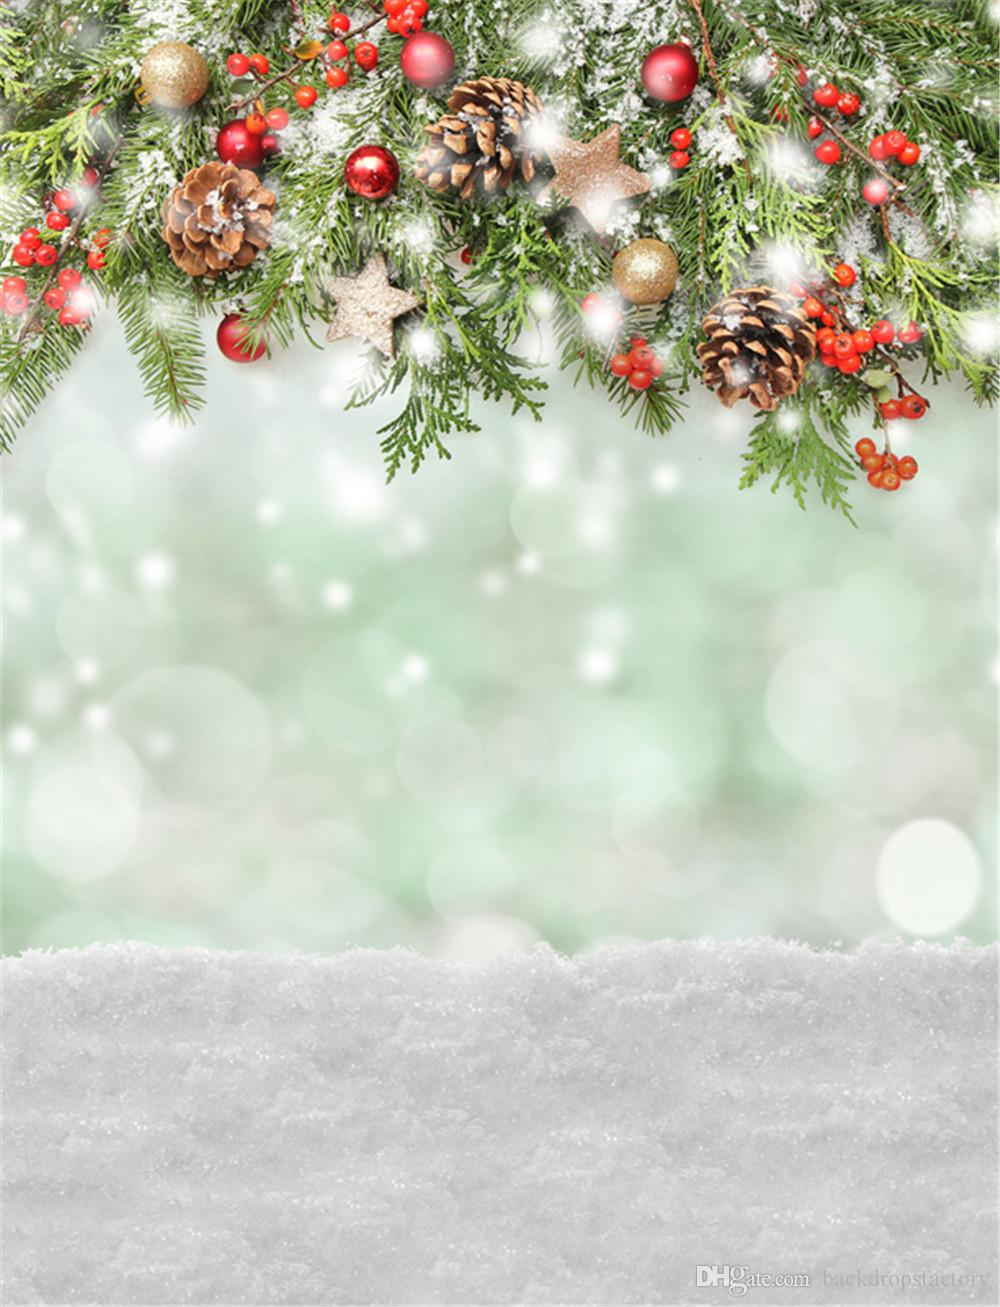 Free Christmas Backgrounds Image, Download Free Clip Art, Free Clip Art on Clipart Library